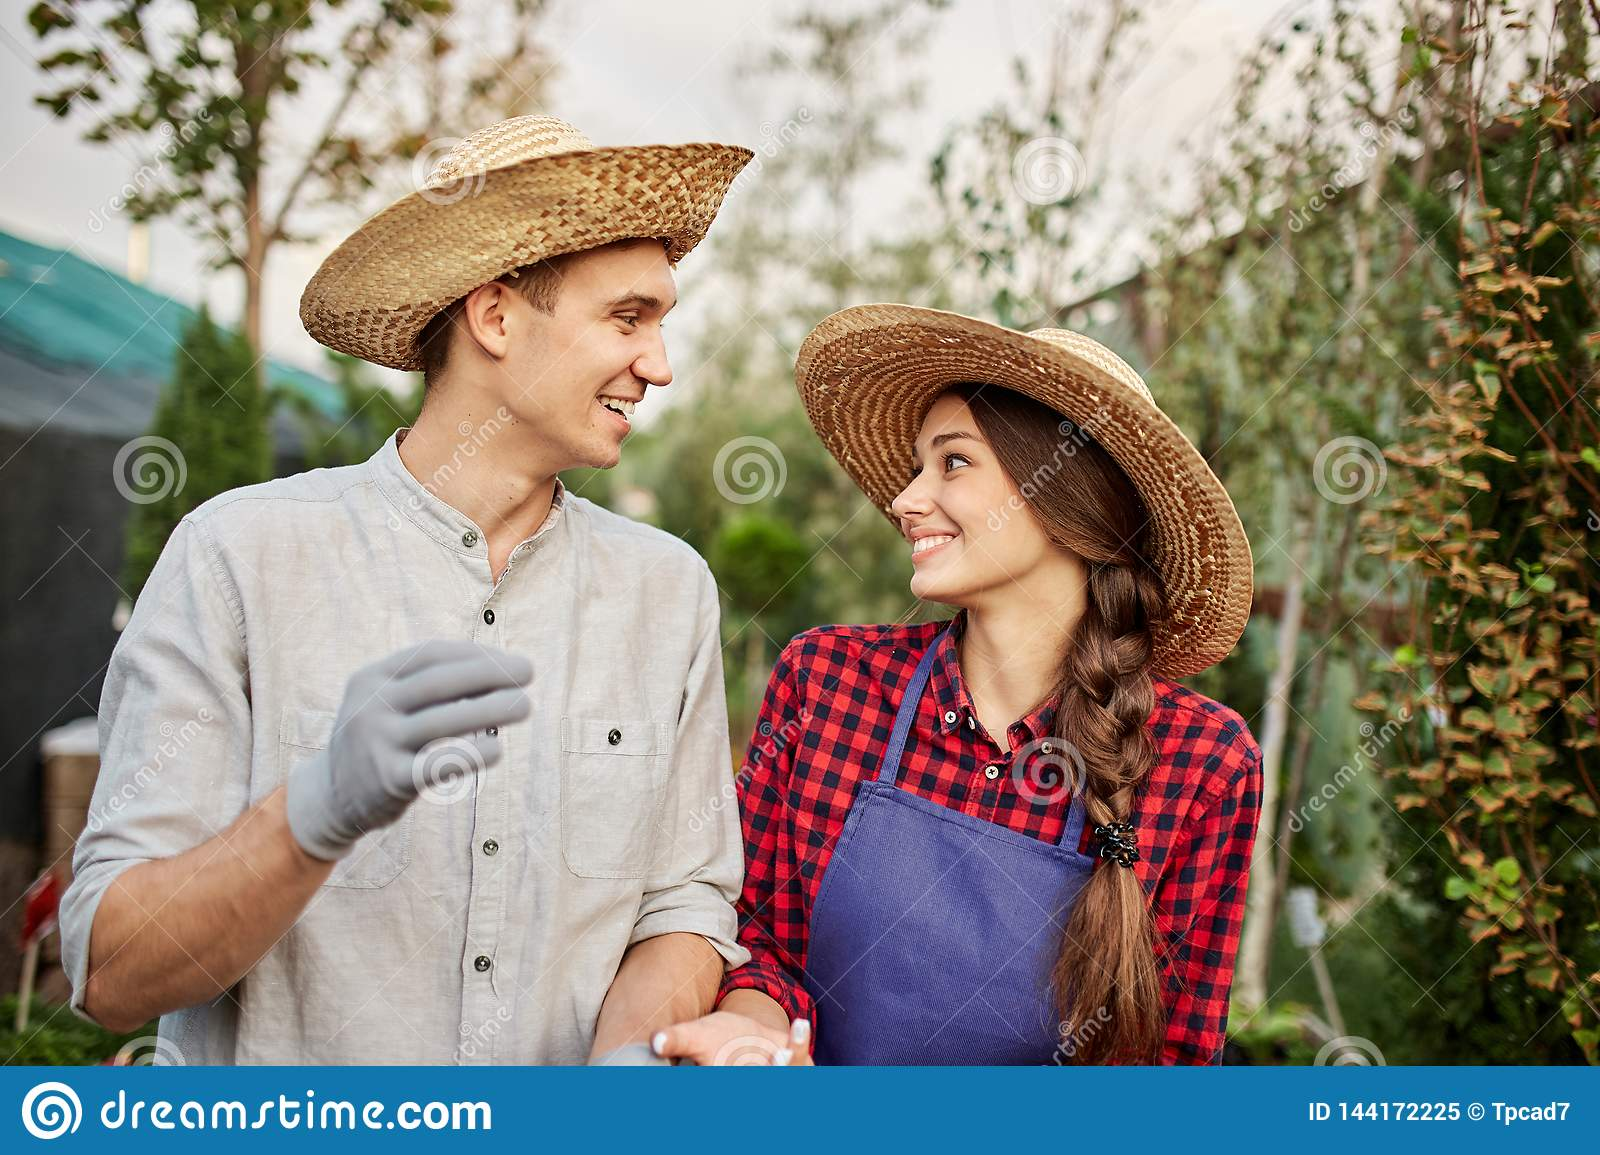 Smiling guy and girl gardeners in a straw hats look to each other in garden on a sunny day.